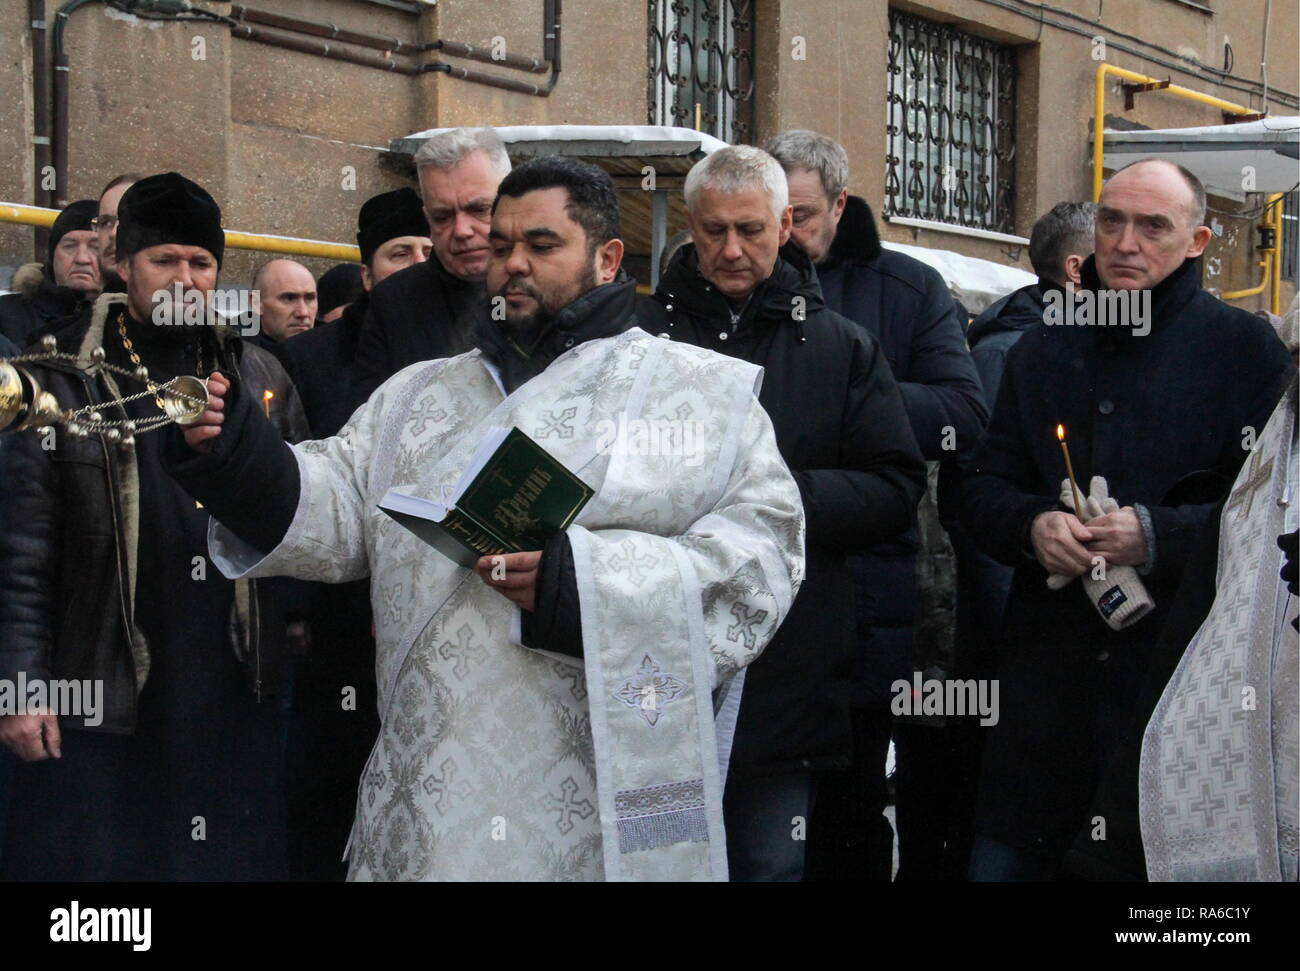 Magnitogorsk, Russia. 02nd Jan, 2019. MAGNITOGORSK, RUSSIA - JANUARY 2, 2019: Chelyabinsk Region Governor Boris Dubrovsky (R) attends an Orthodox memorial service at the site of an apartment block collapse in Magnitogorsk. On December 31, 2018, at 4:00am, a domestic gas explosion caused a partial collapse of the residential building at 164 Prospekt Karla Marksa Street killing 14 people and leaving dozens missing. Ilya Moskovets/TASS Credit: ITAR-TASS News Agency/Alamy Live News - Stock Image